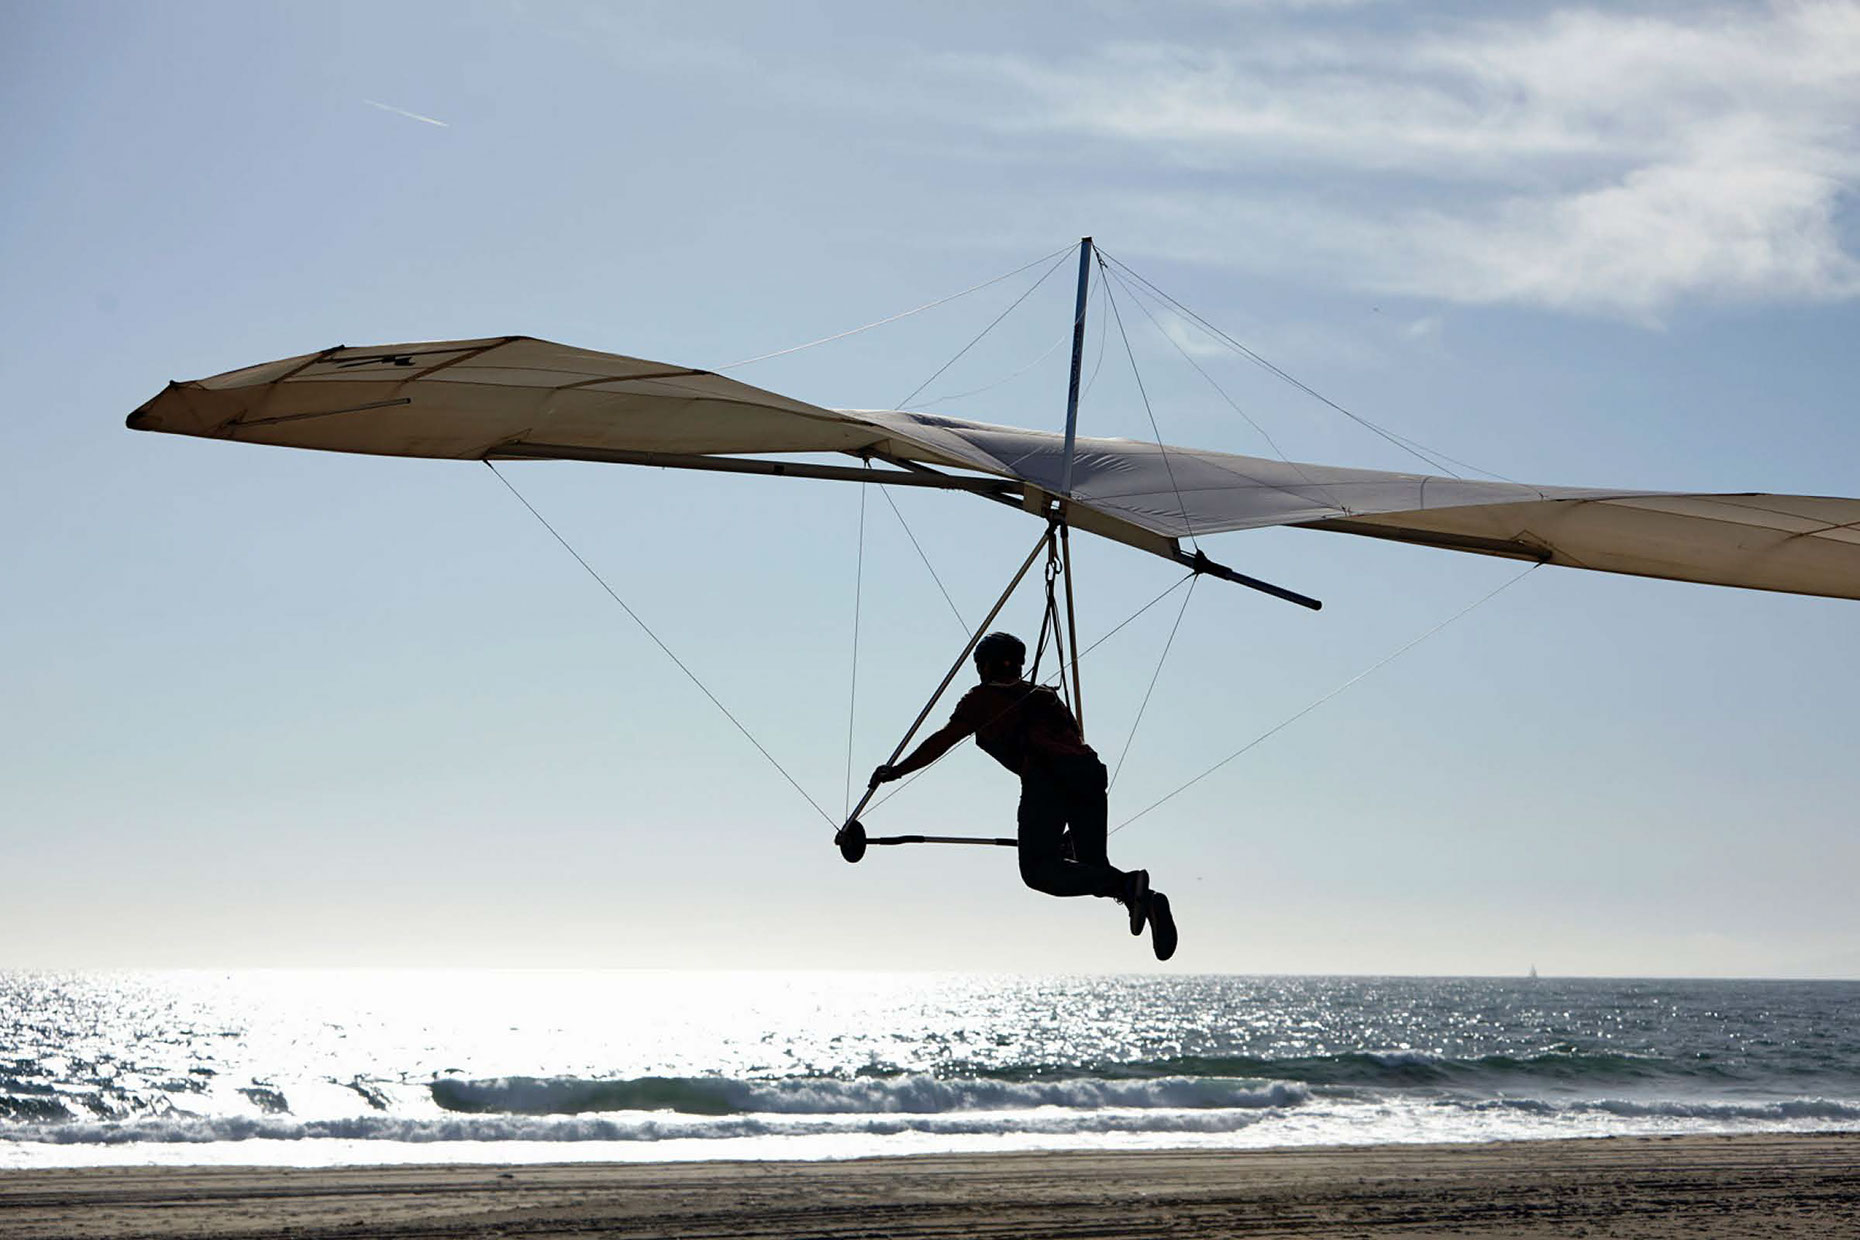 Photography_Lifestyle_Hang Gliding at the Beach-Tony Garcia